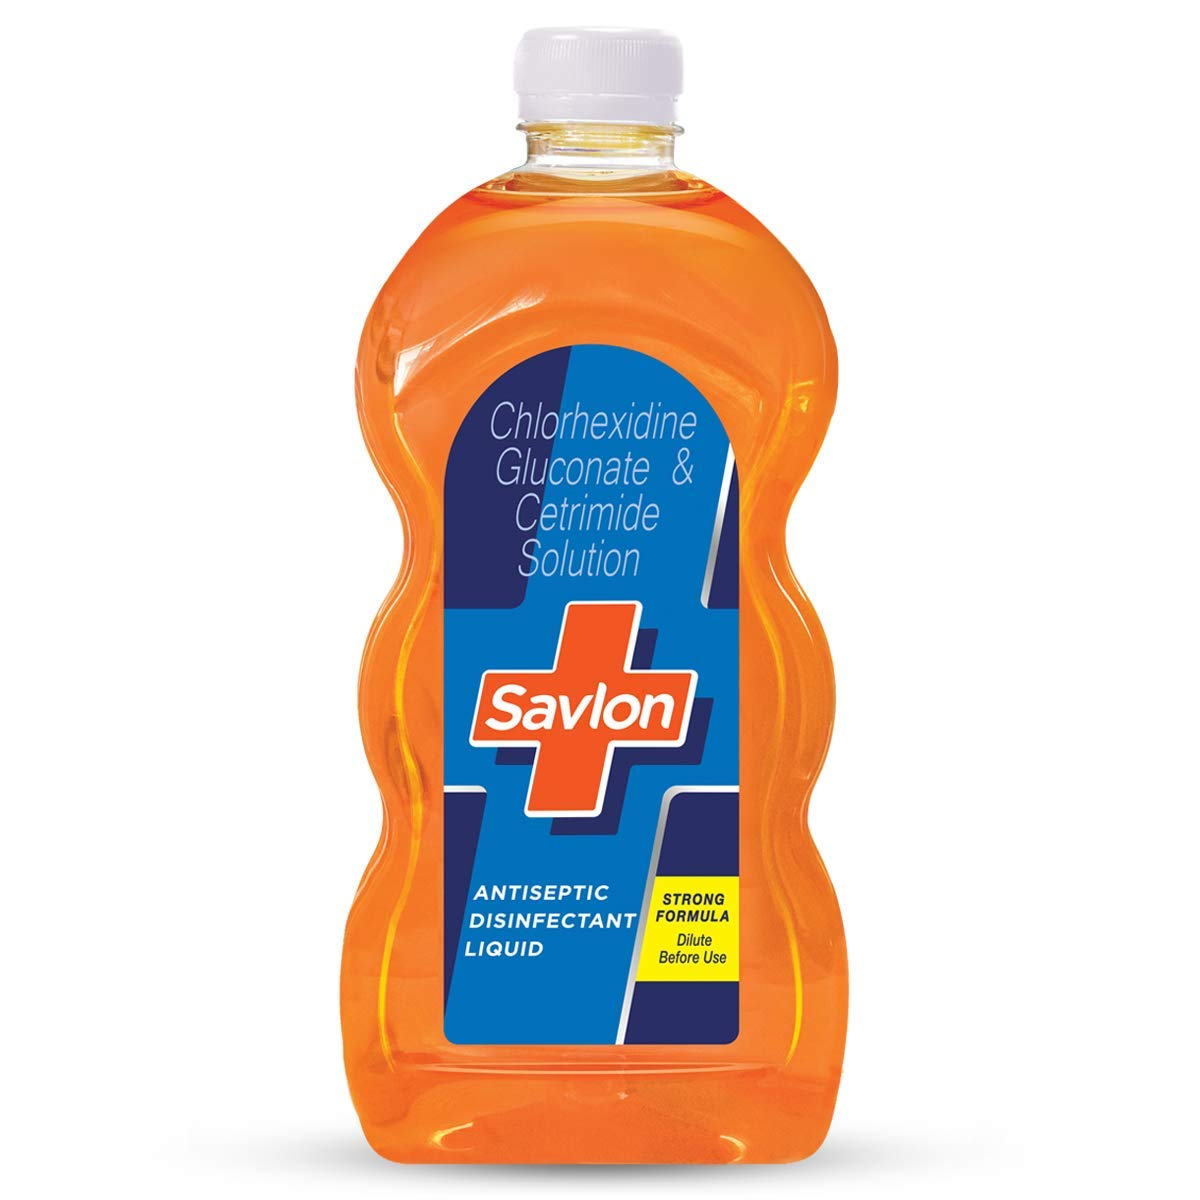 Savlon Antiseptic Disinfectant Liquid for First Aid, Personal Hygiene, and Home Hygiene - 1000ml